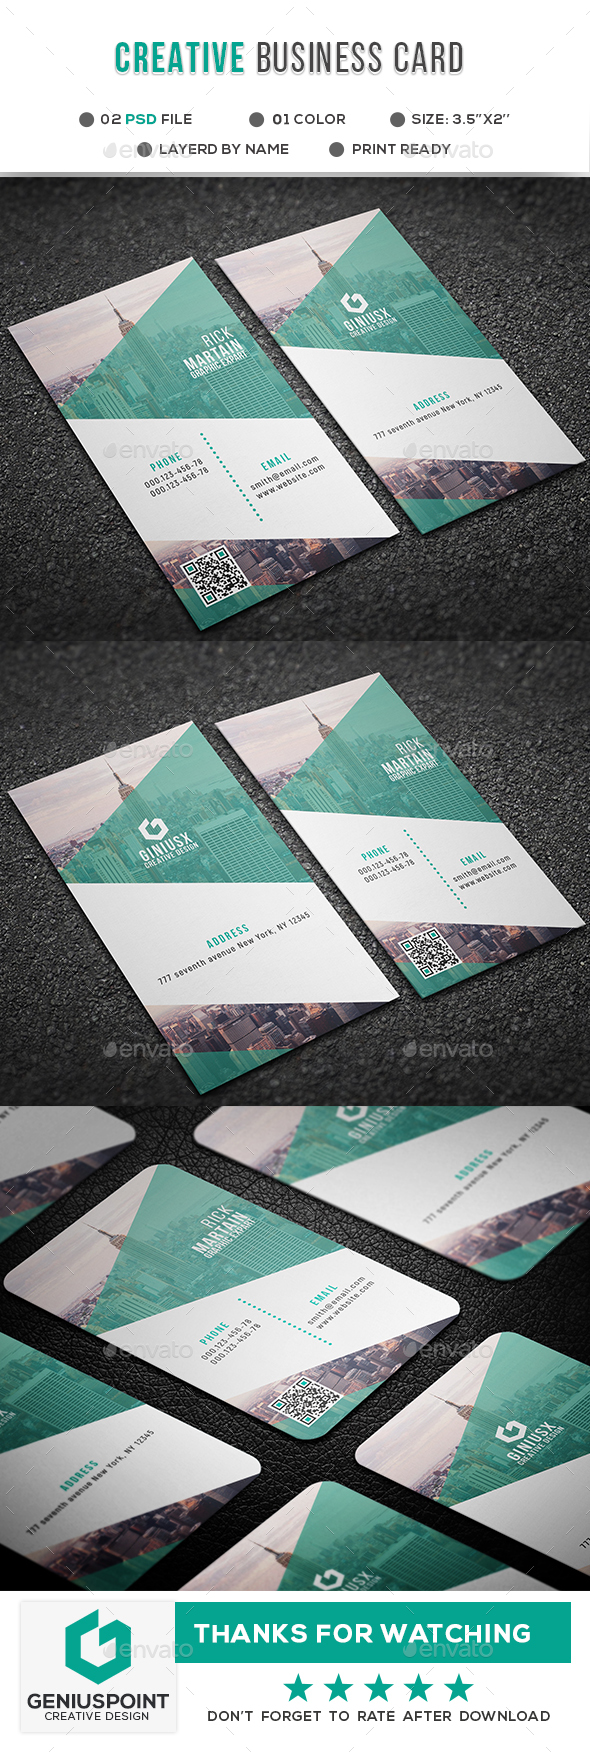 Free CSS  2708 Free Website Templates CSS Templates and